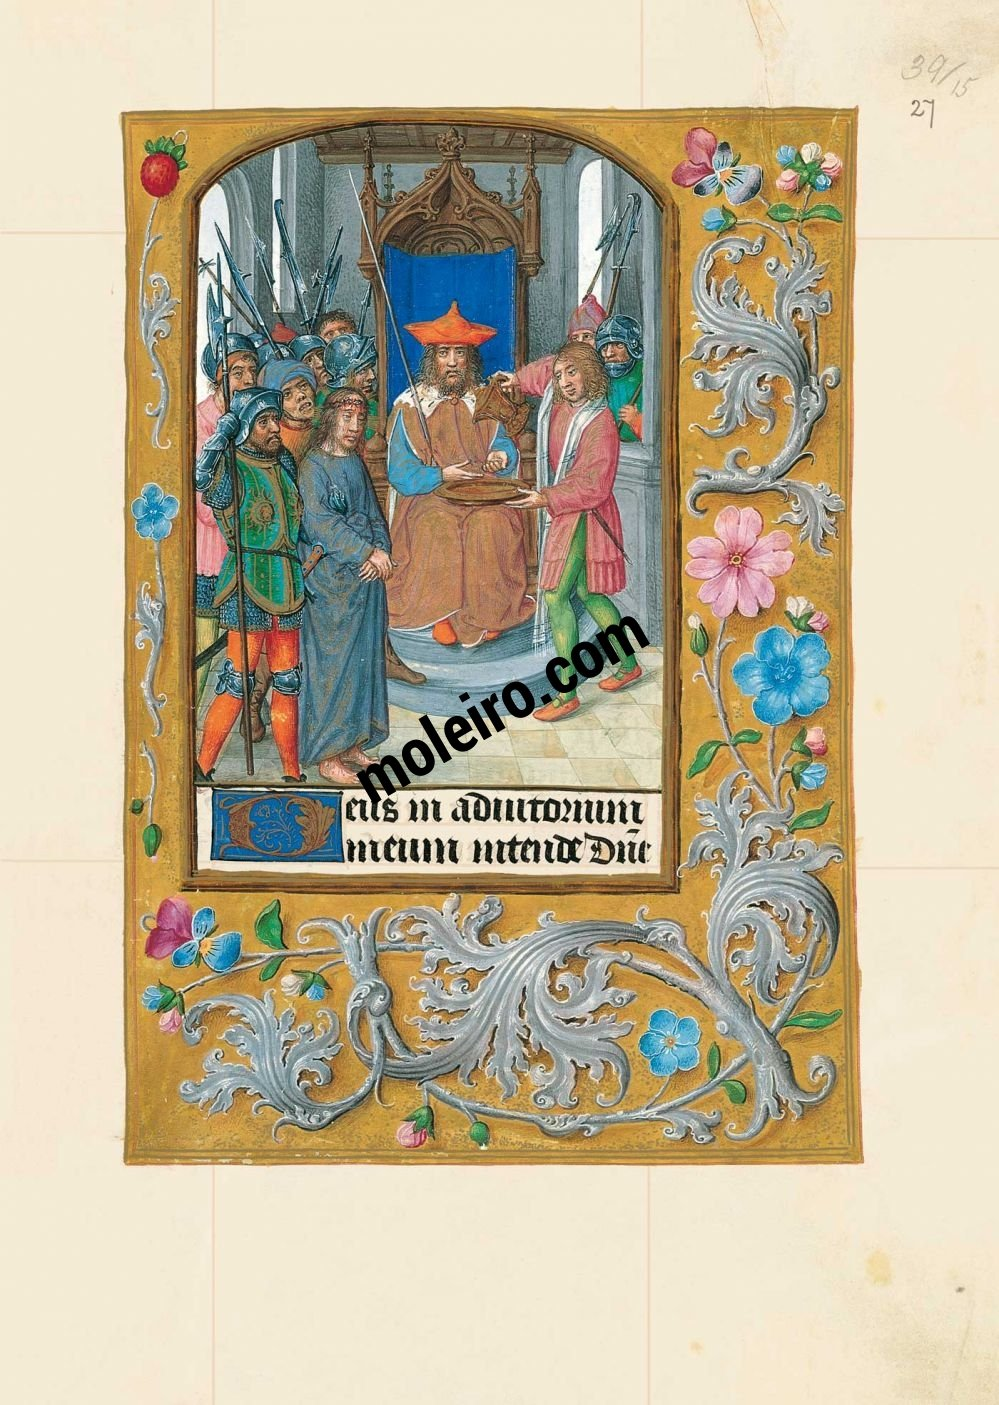 The Hours of Joanna I of Castile, Joanna the Mad (The London Rothschild Prayerbook) f. 27r, Christ before Pilate